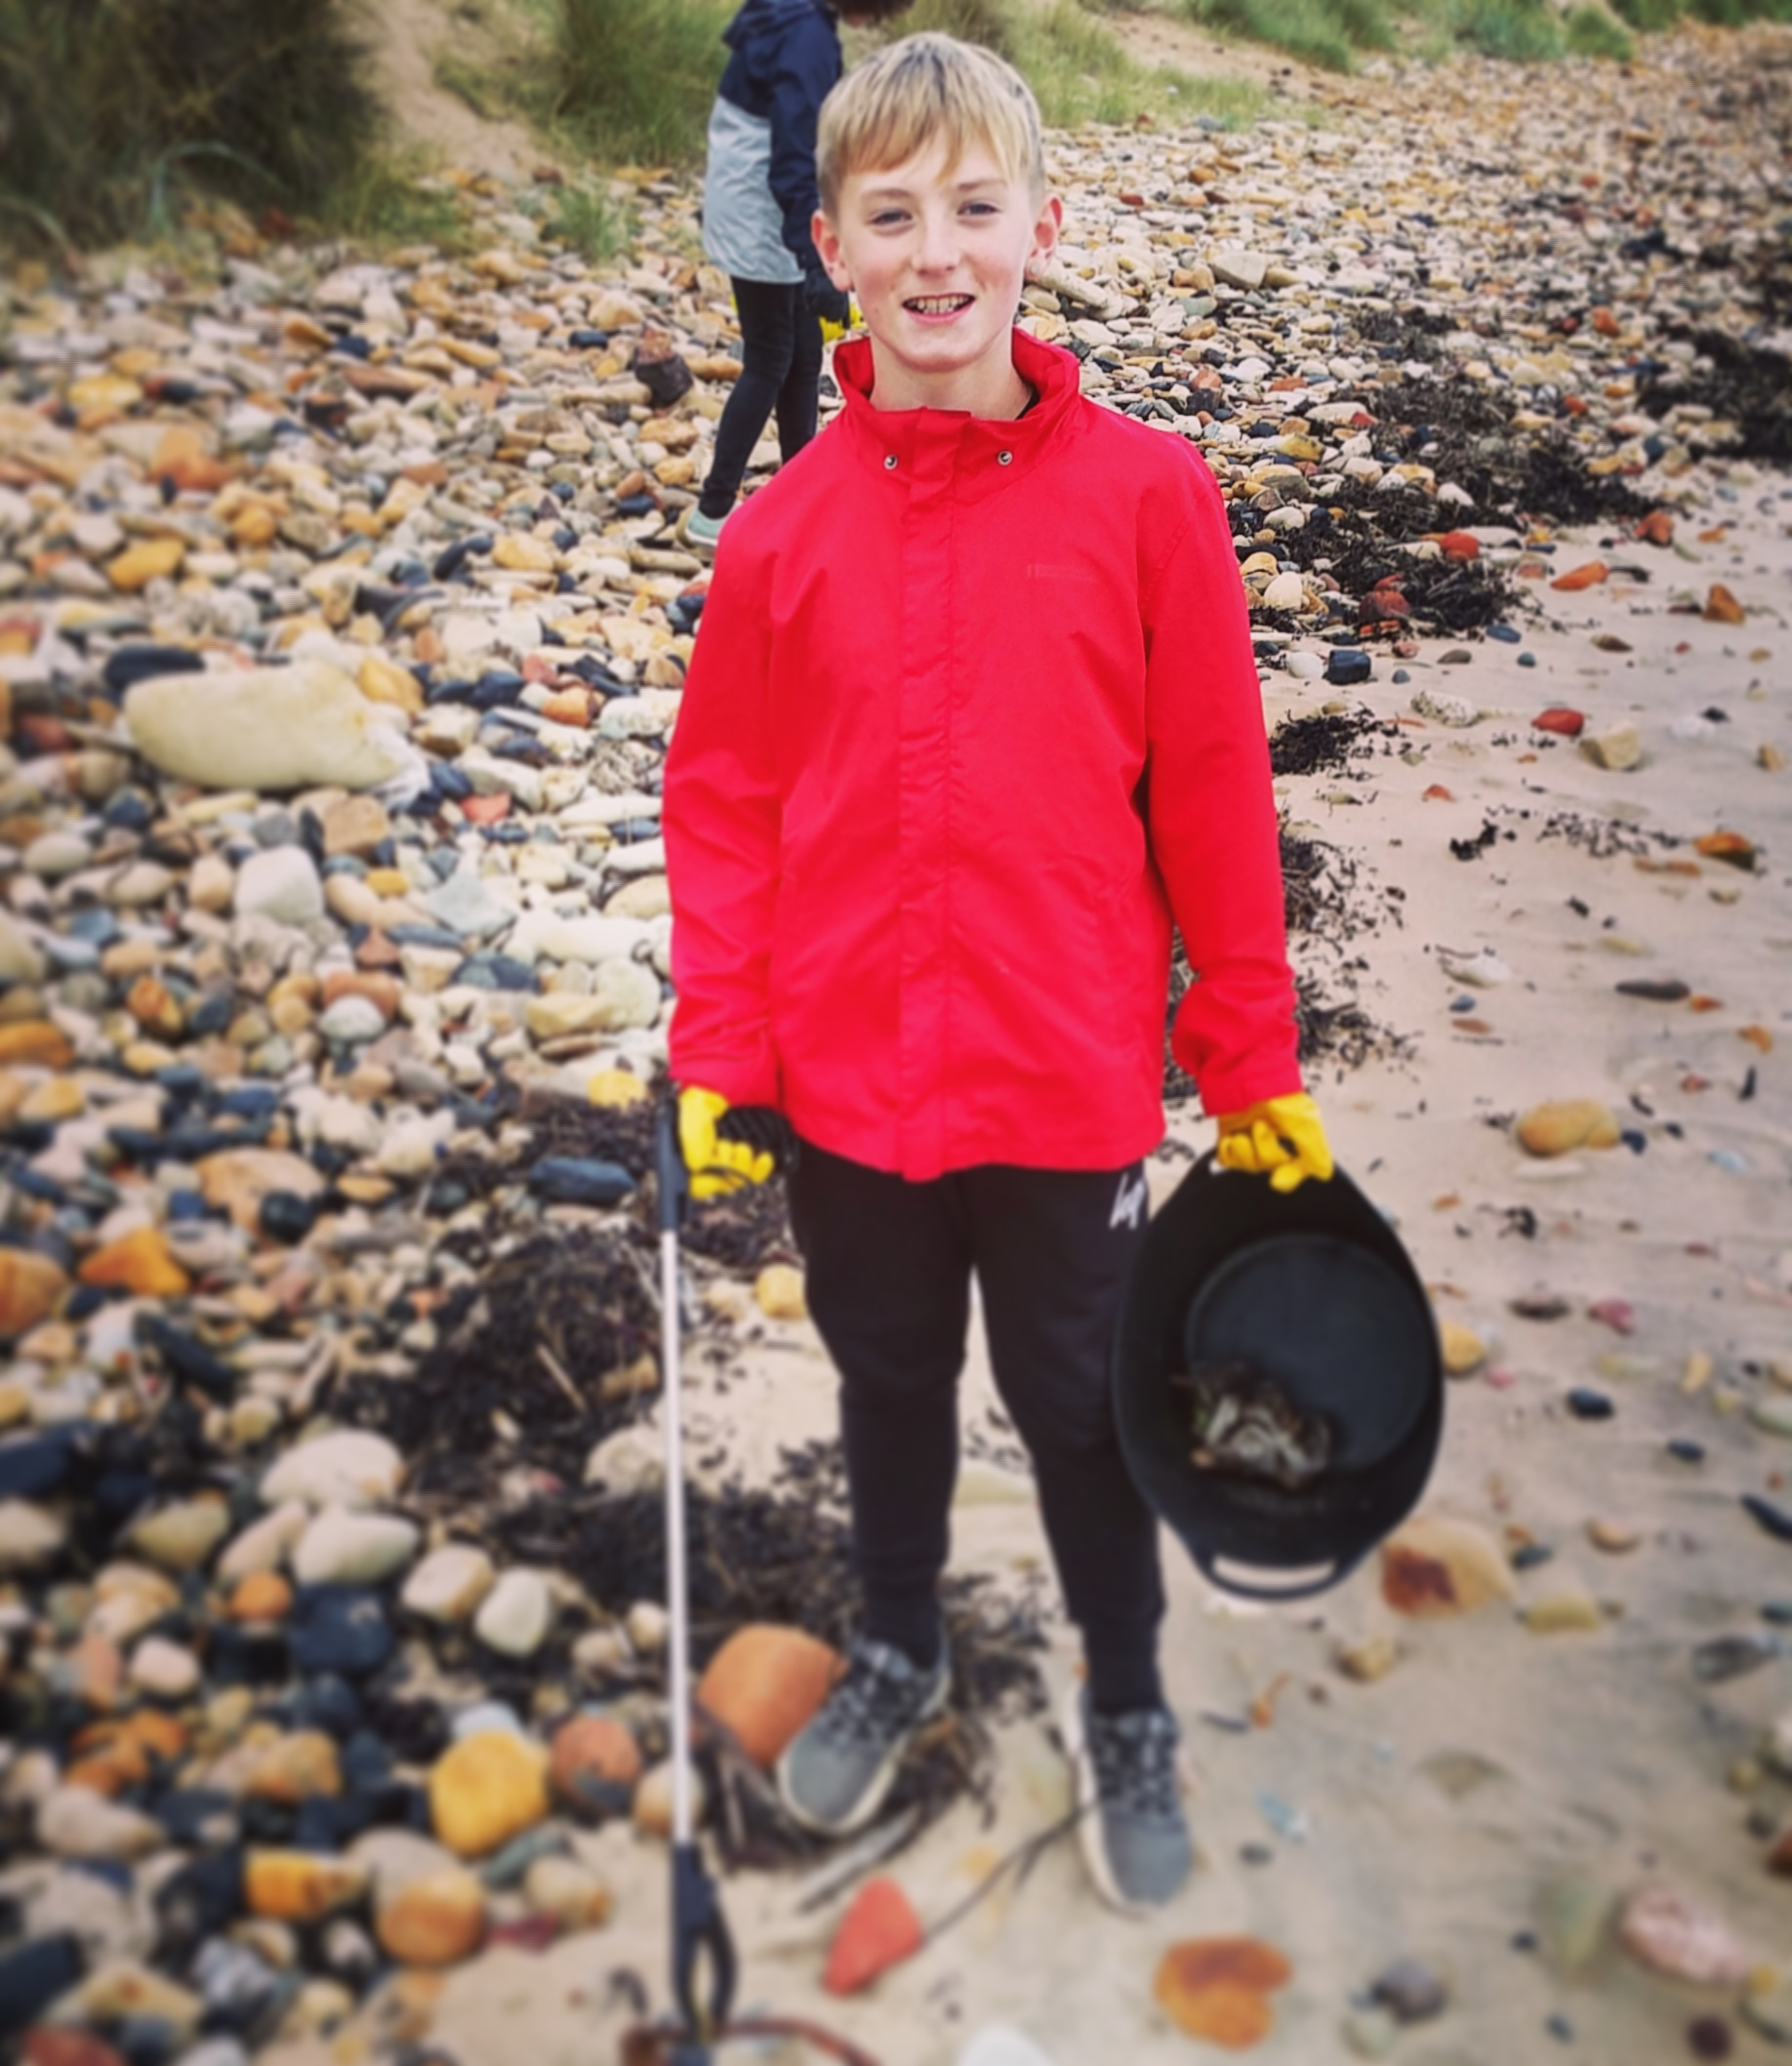 Kid's Club Oliver came to our latest beach clean